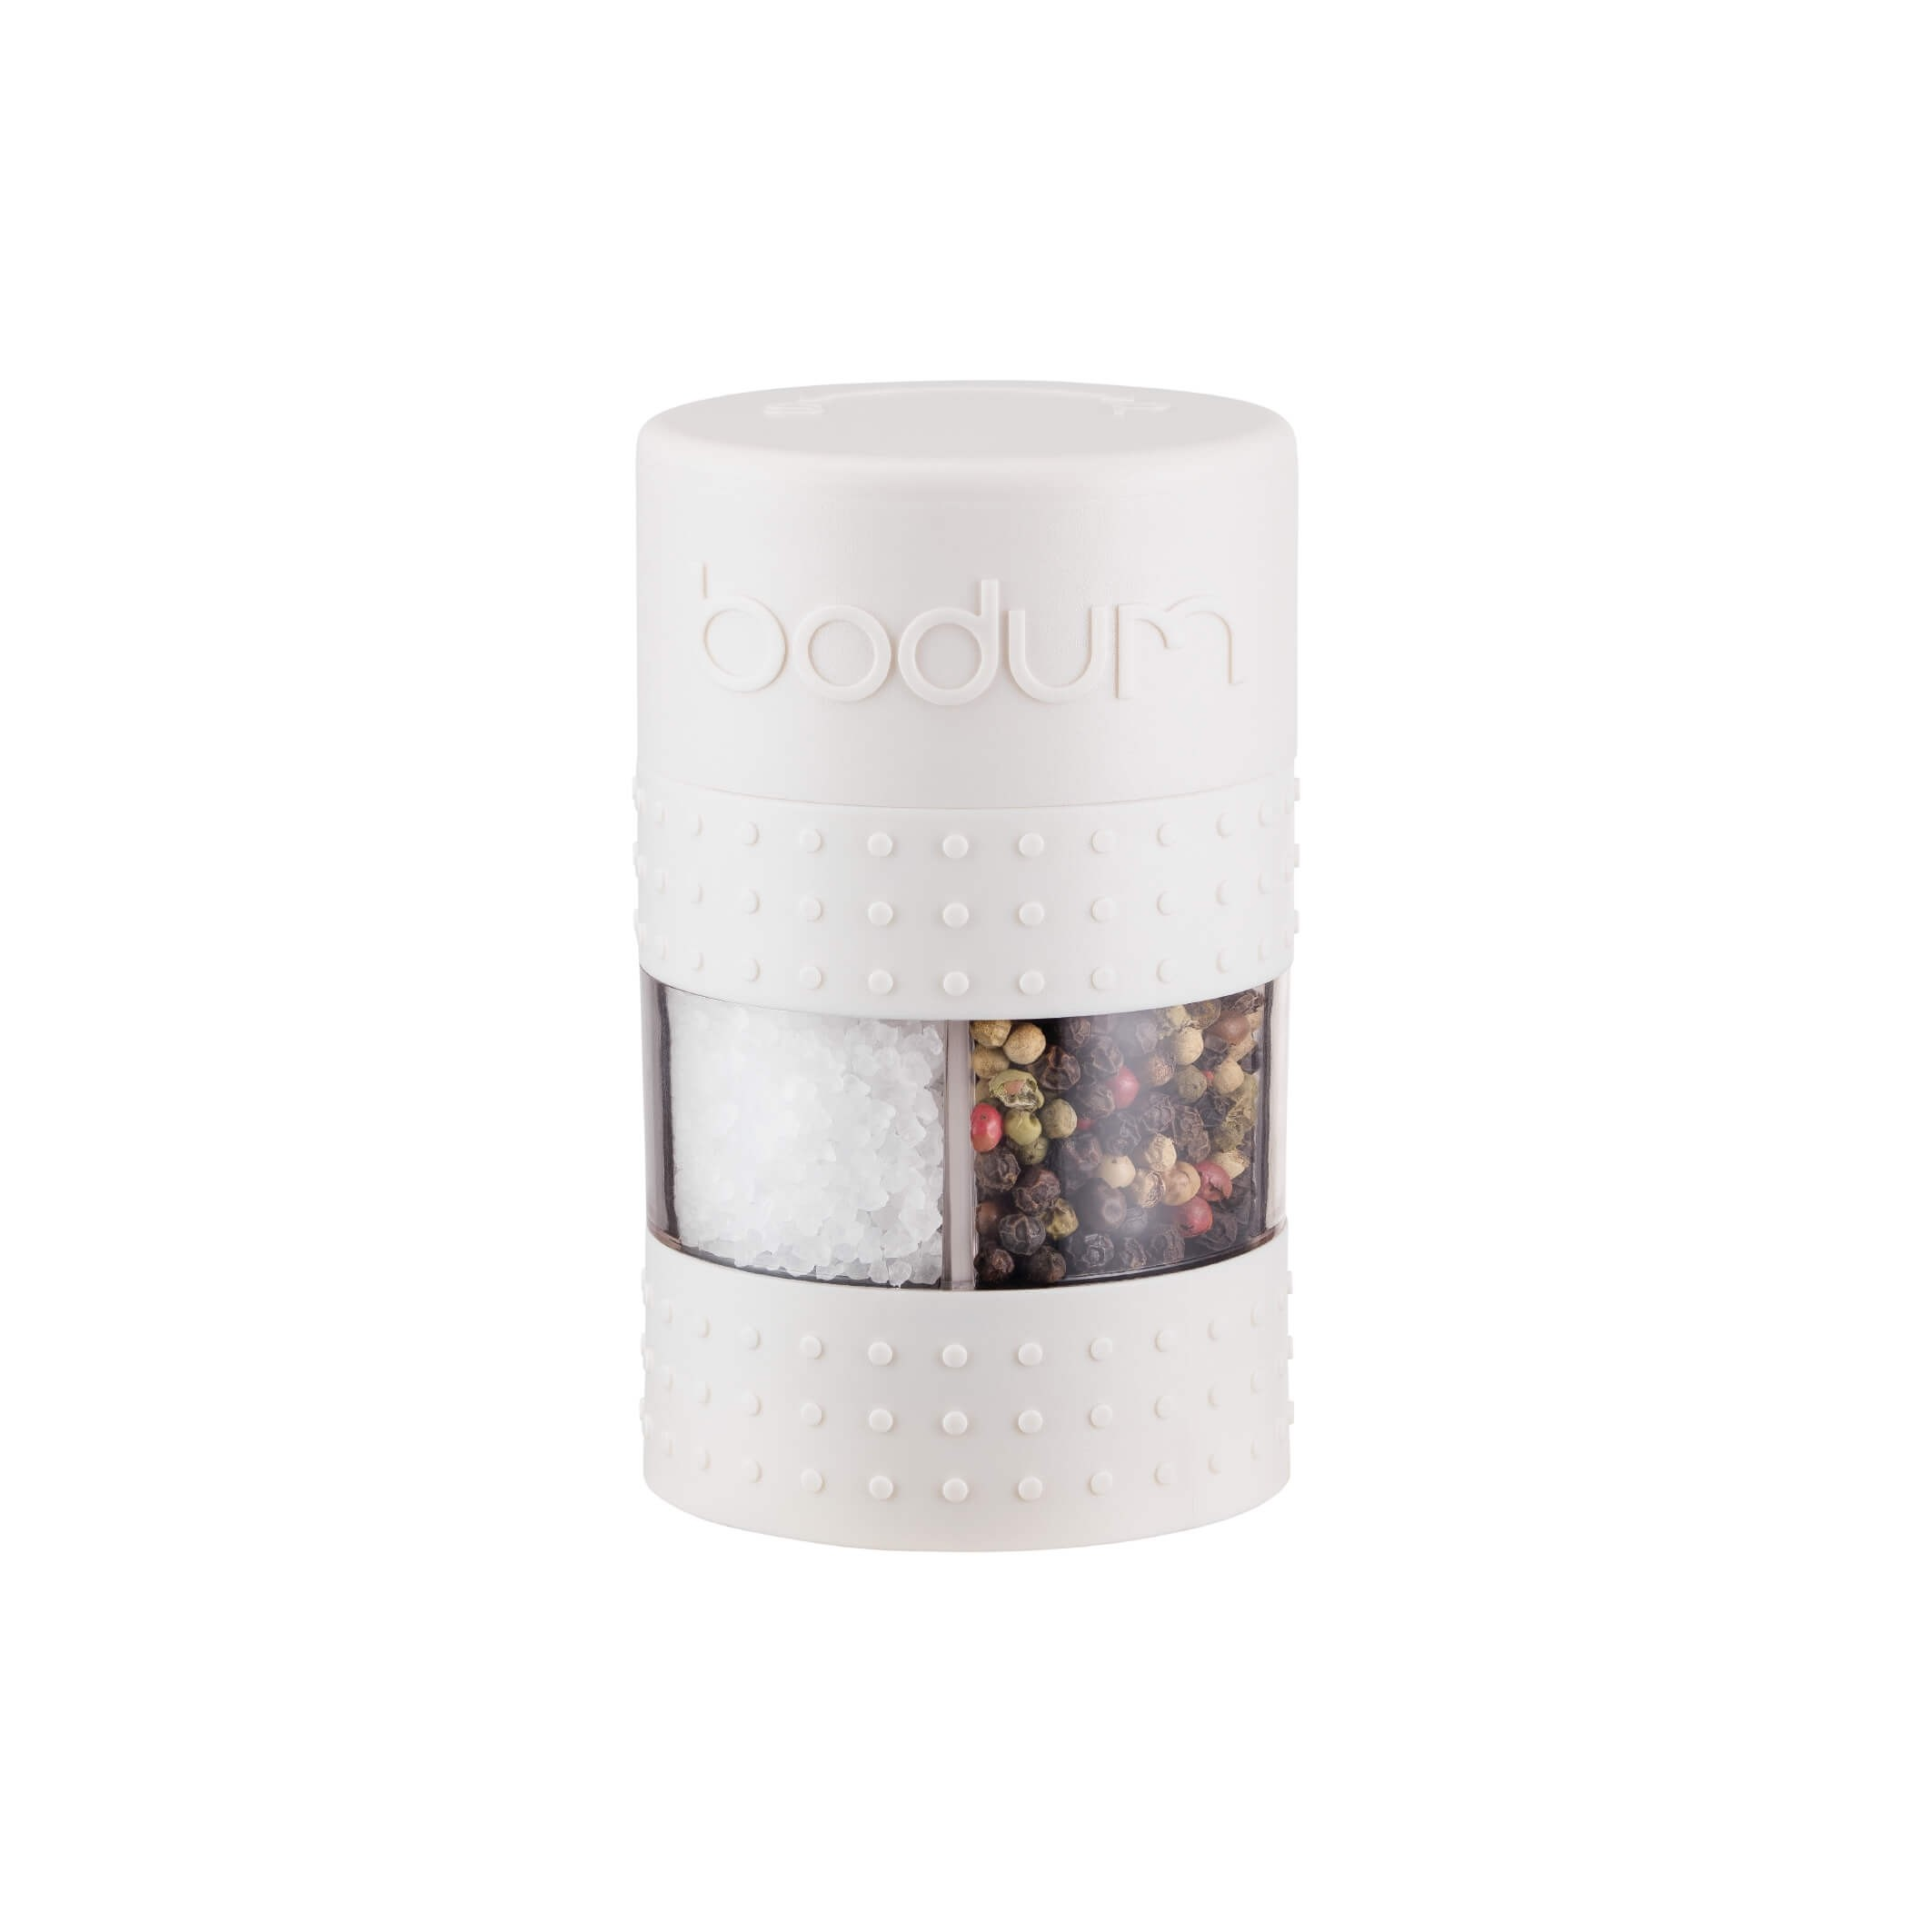 Bodum Bistro White Salt & Pepper Grinder (1 Units)